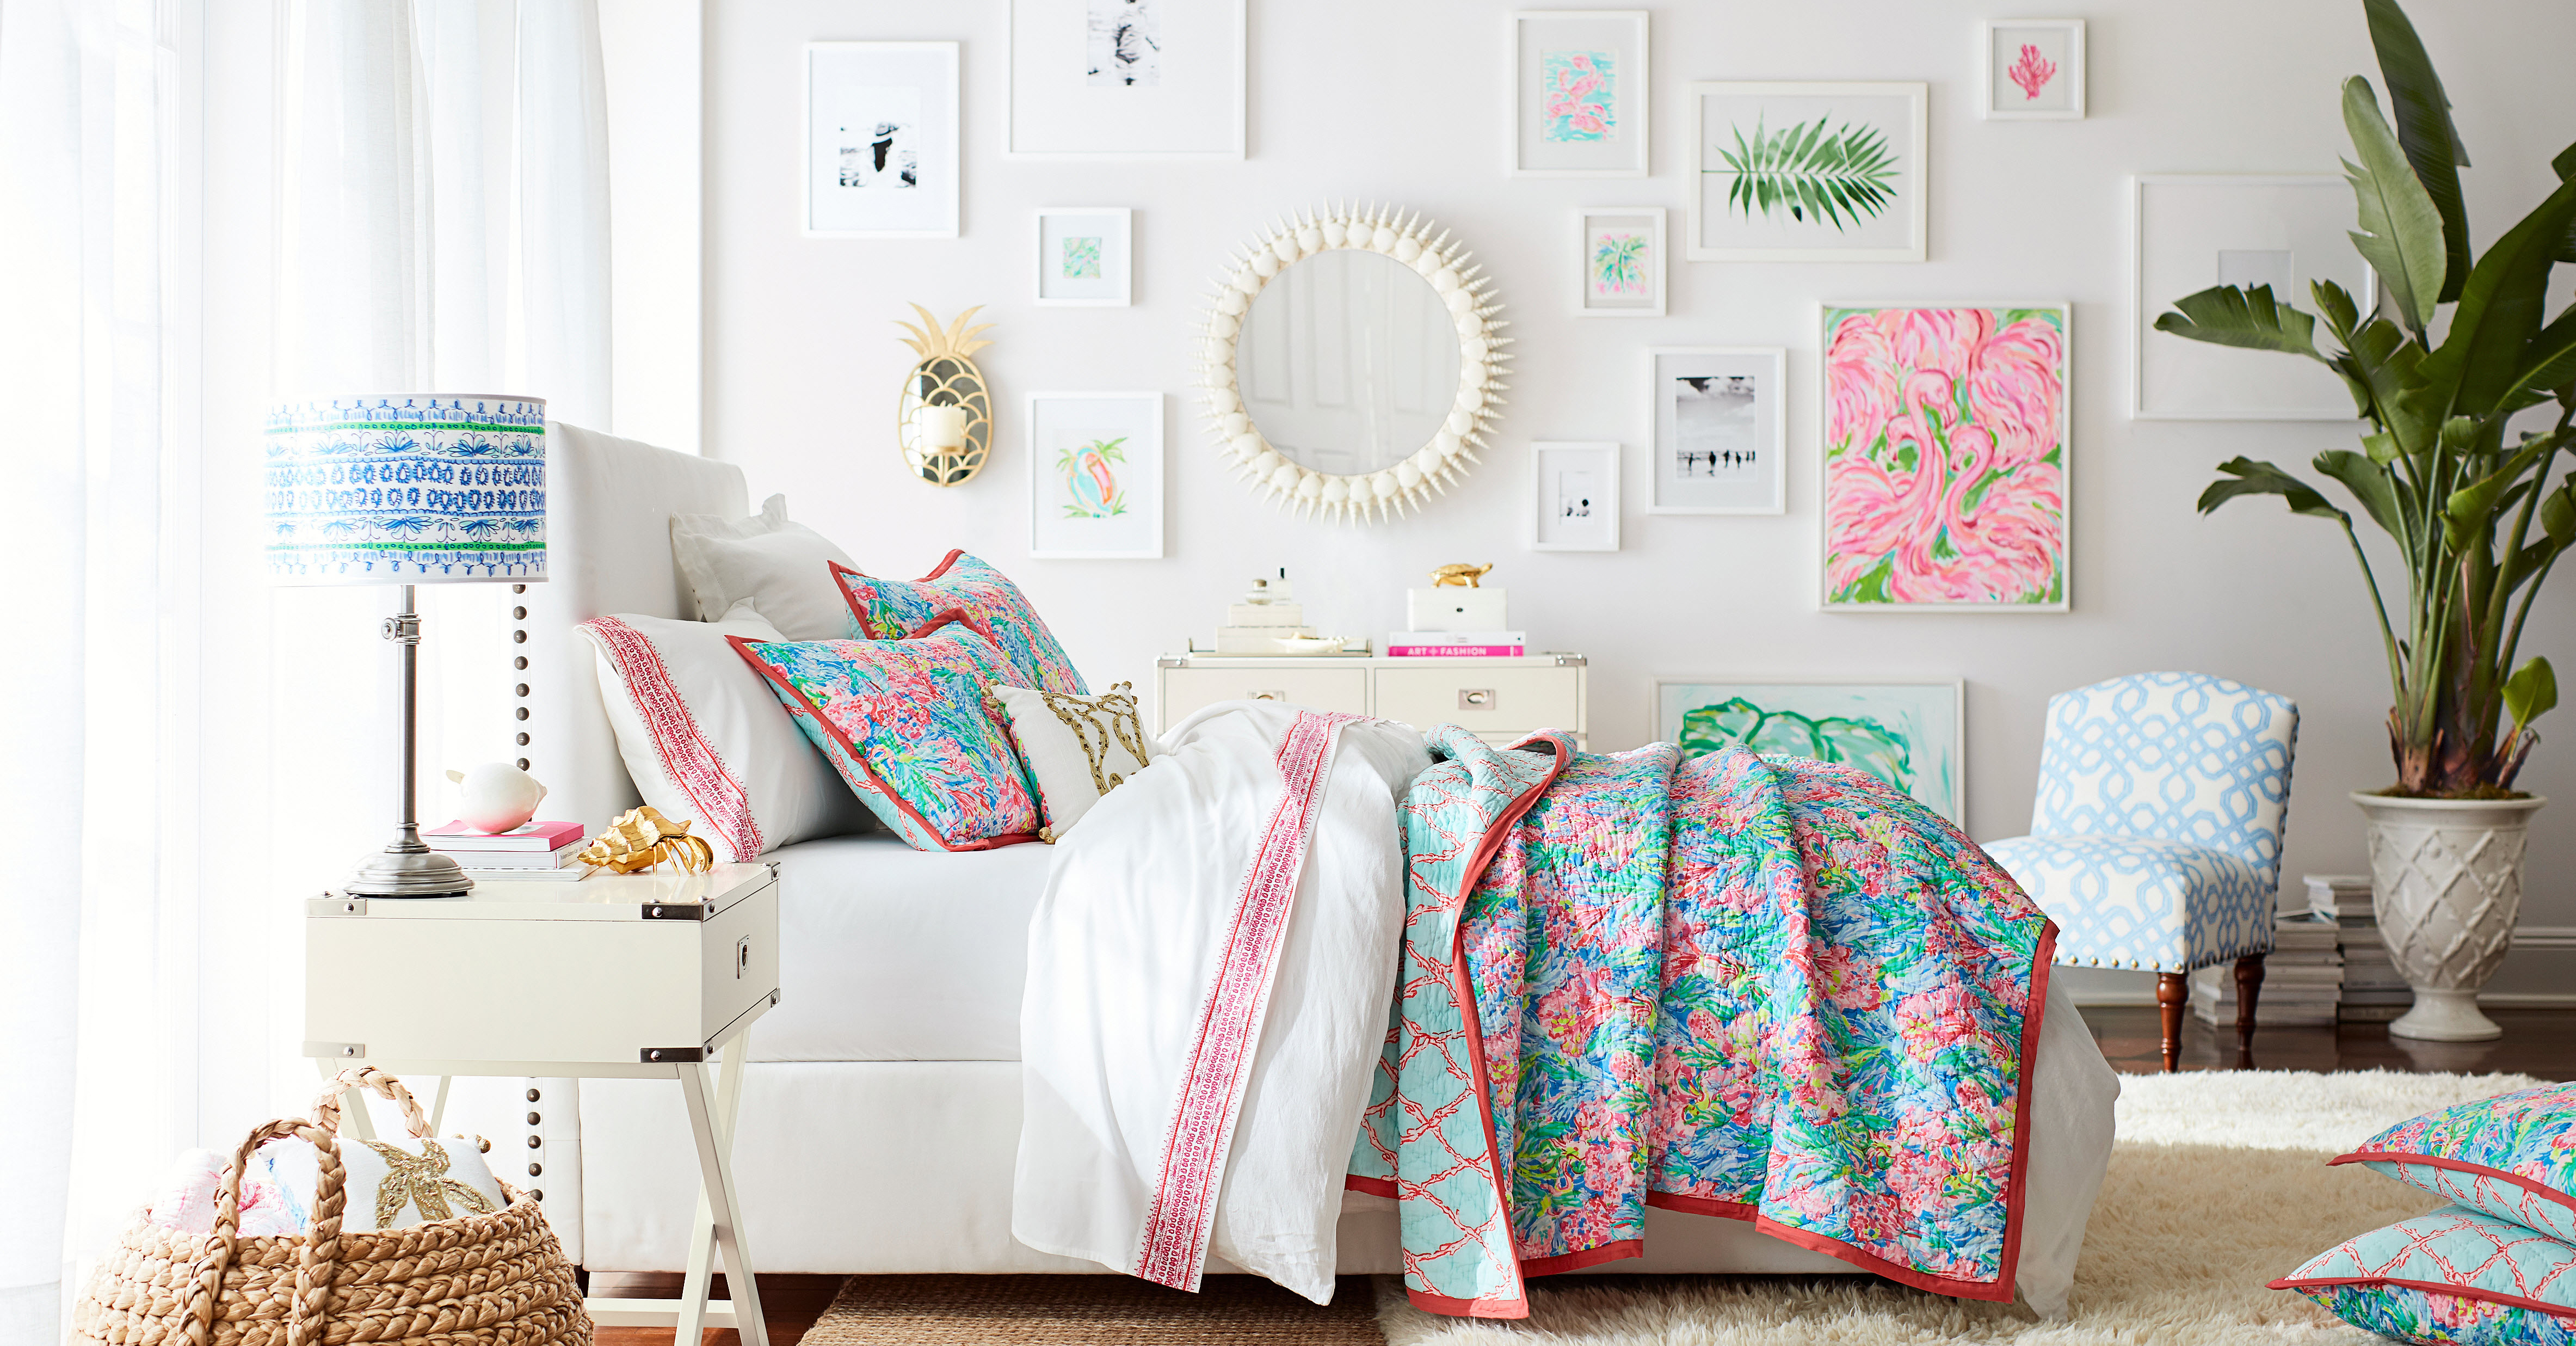 my hill pulitzer bed lilly room bedding this daughters will garnet be stock in first pin back impression